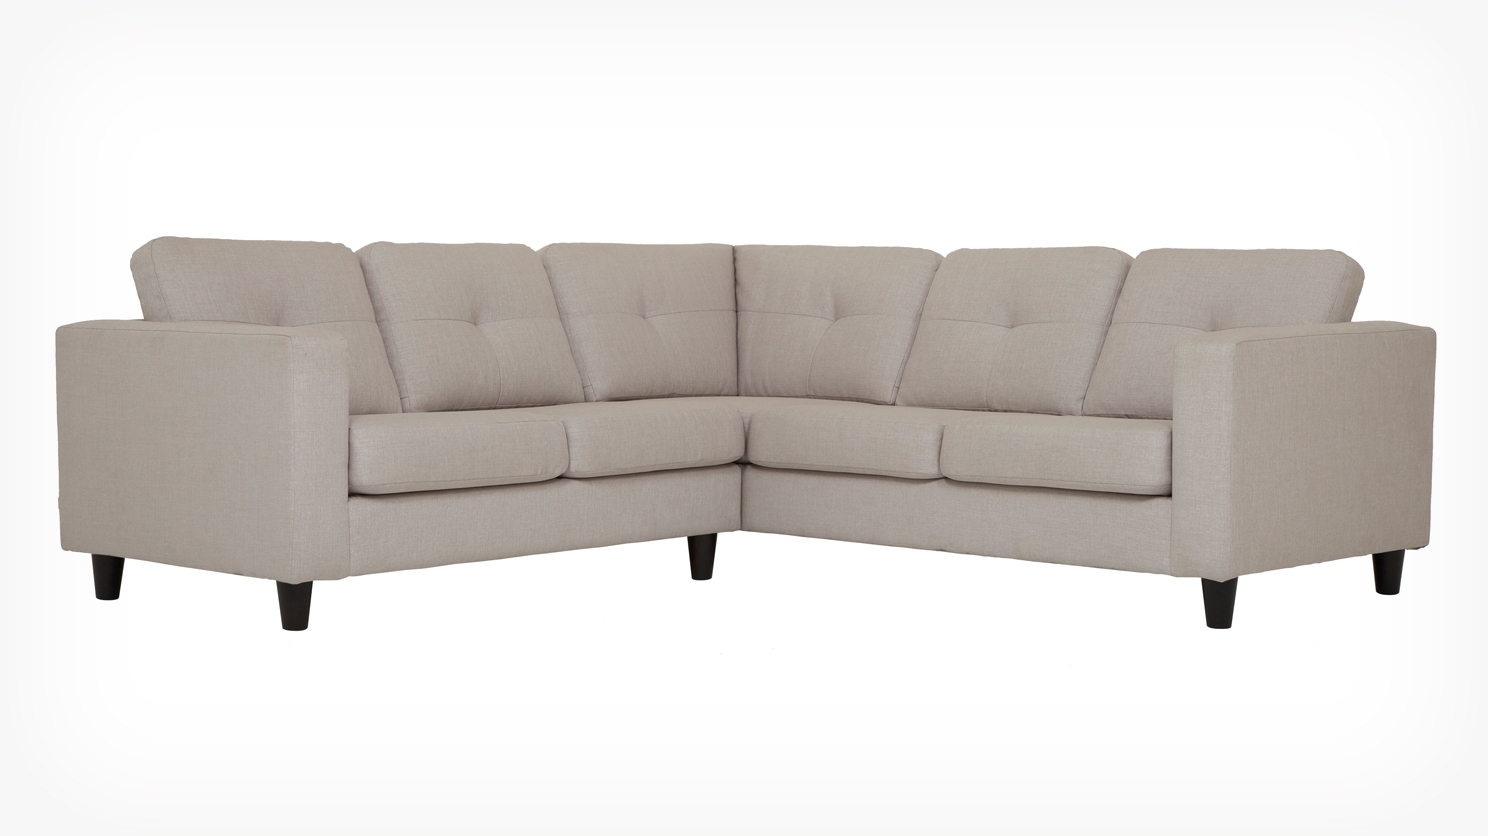 Solo 2 Piece Sectional Sofa – Fabric For Current Eq3 Sectional Sofas (View 3 of 15)